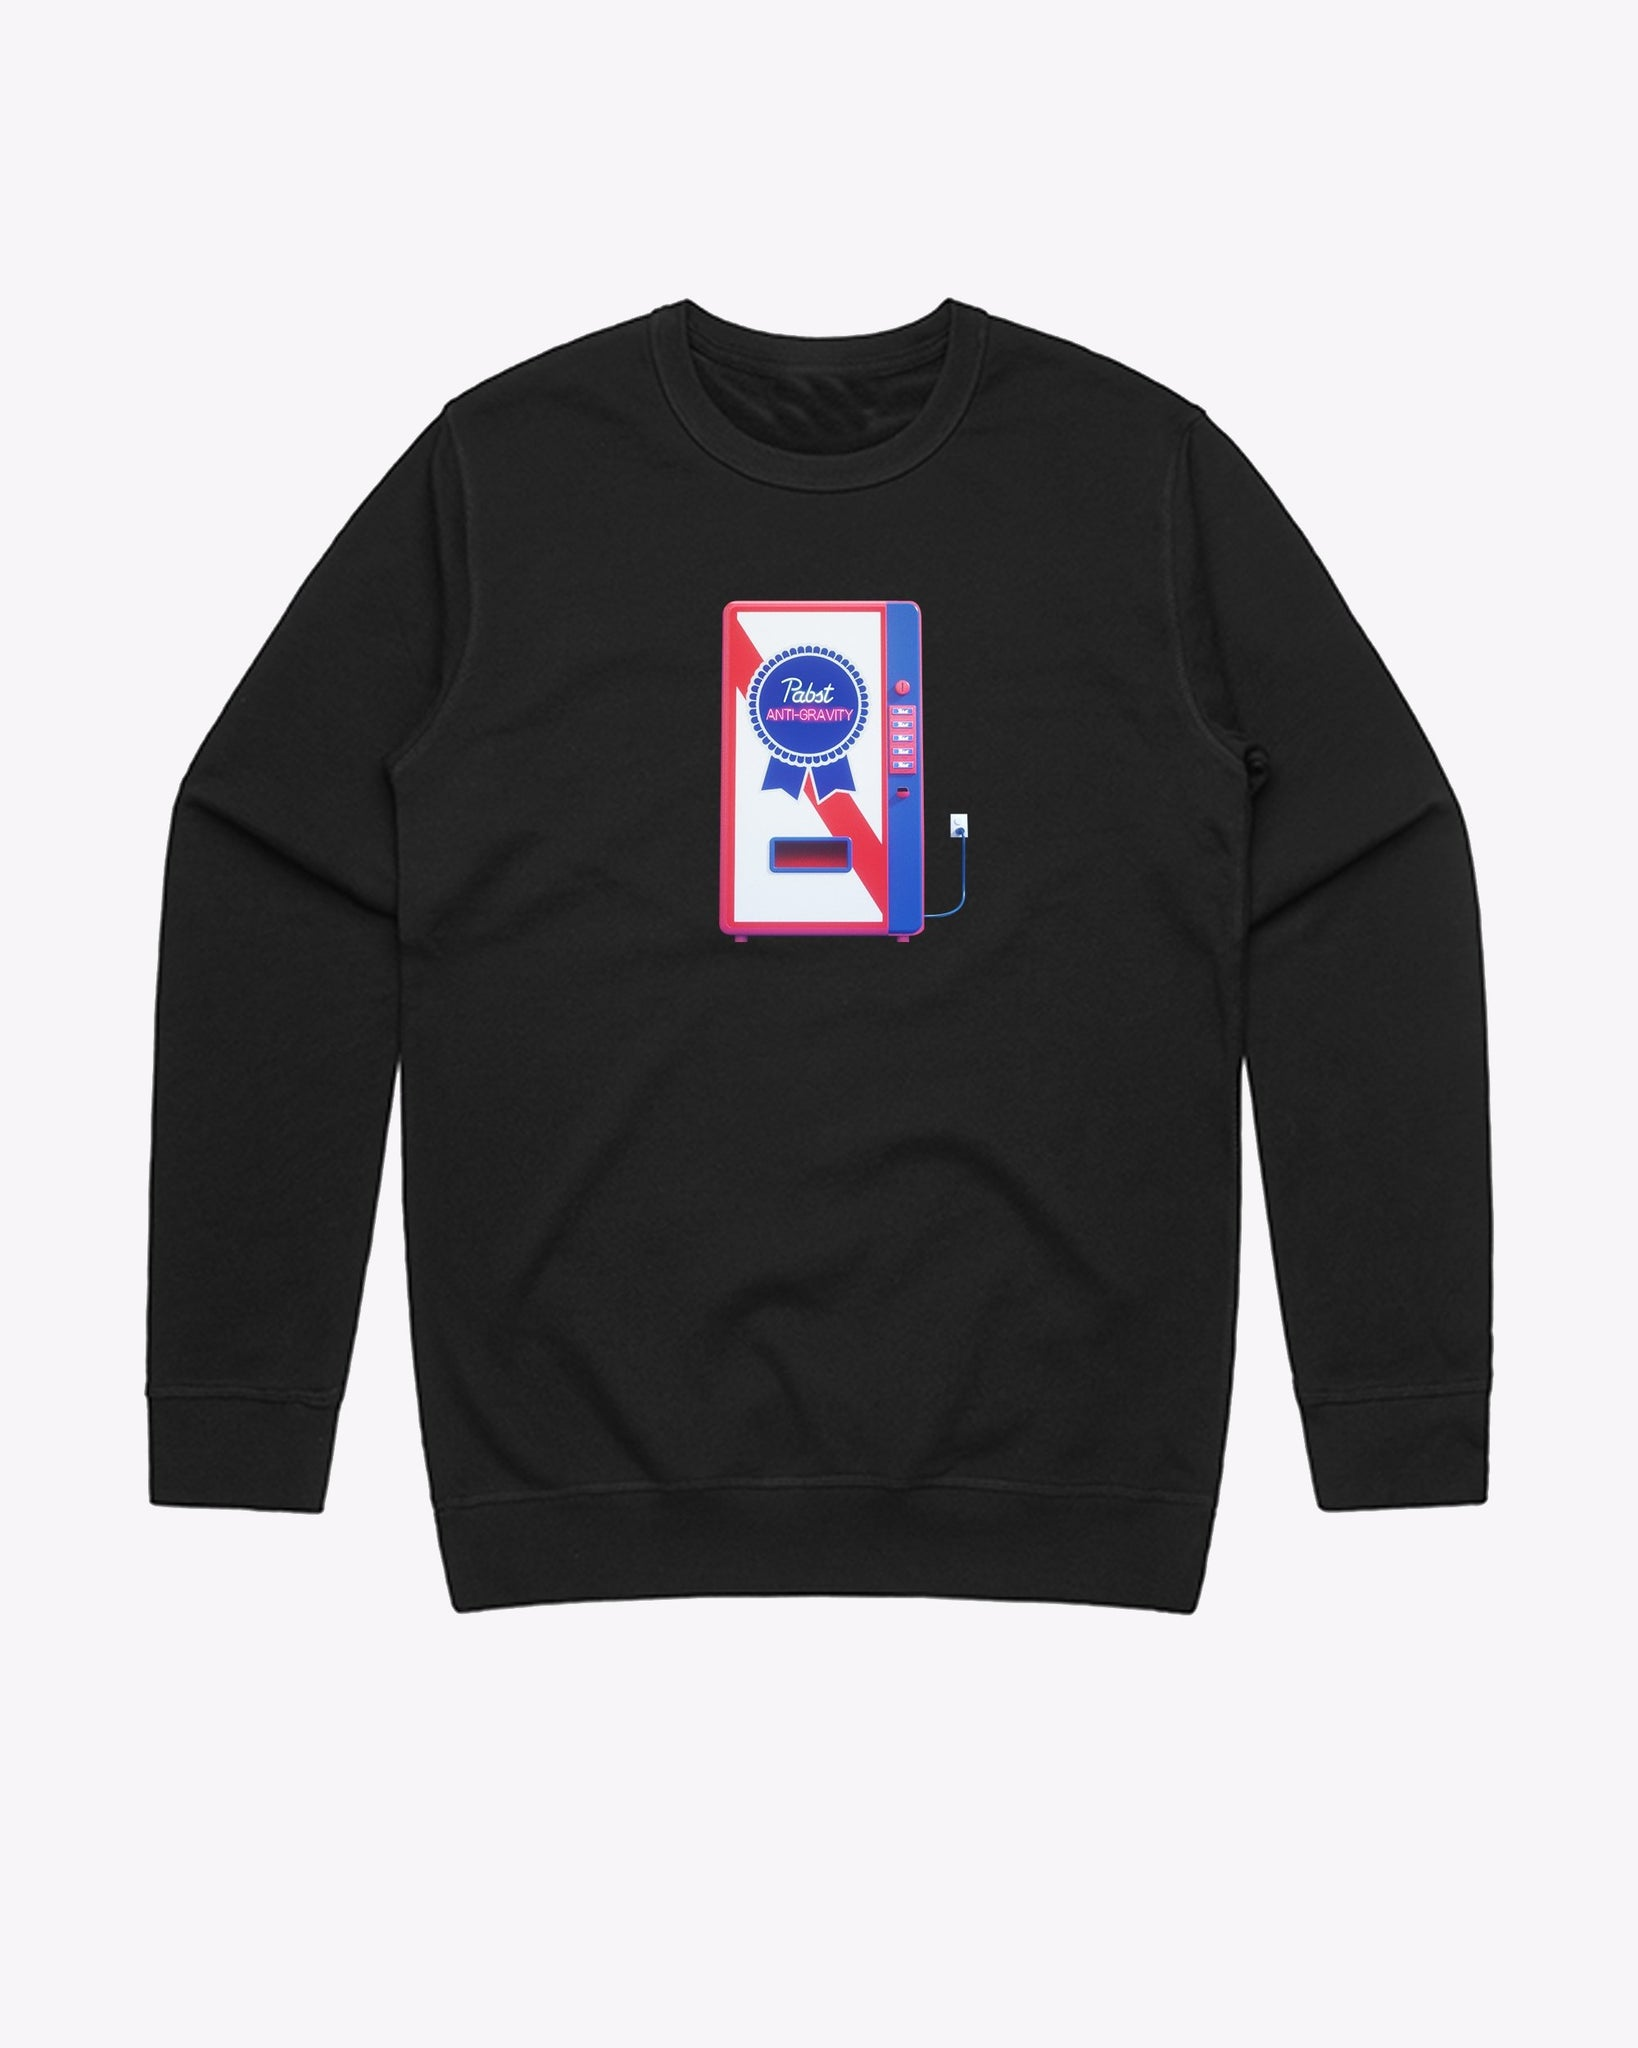 Art Can Travis Ragsdale Vending Machine Crew Neck